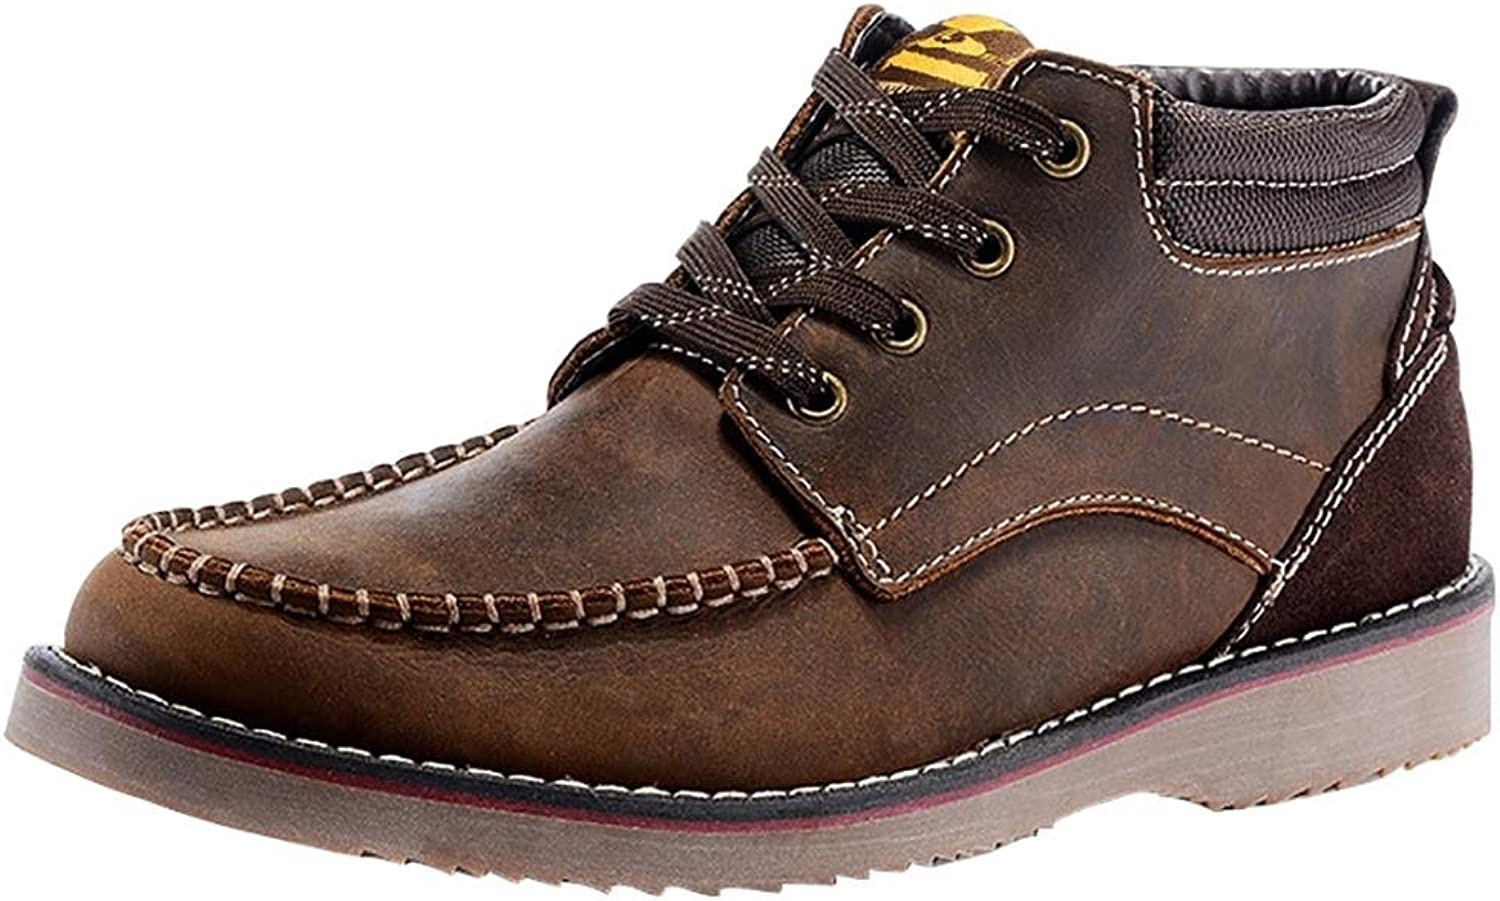 NANXZ Men's Autumn And Winter Leather Straps High Top Boots Outdoor